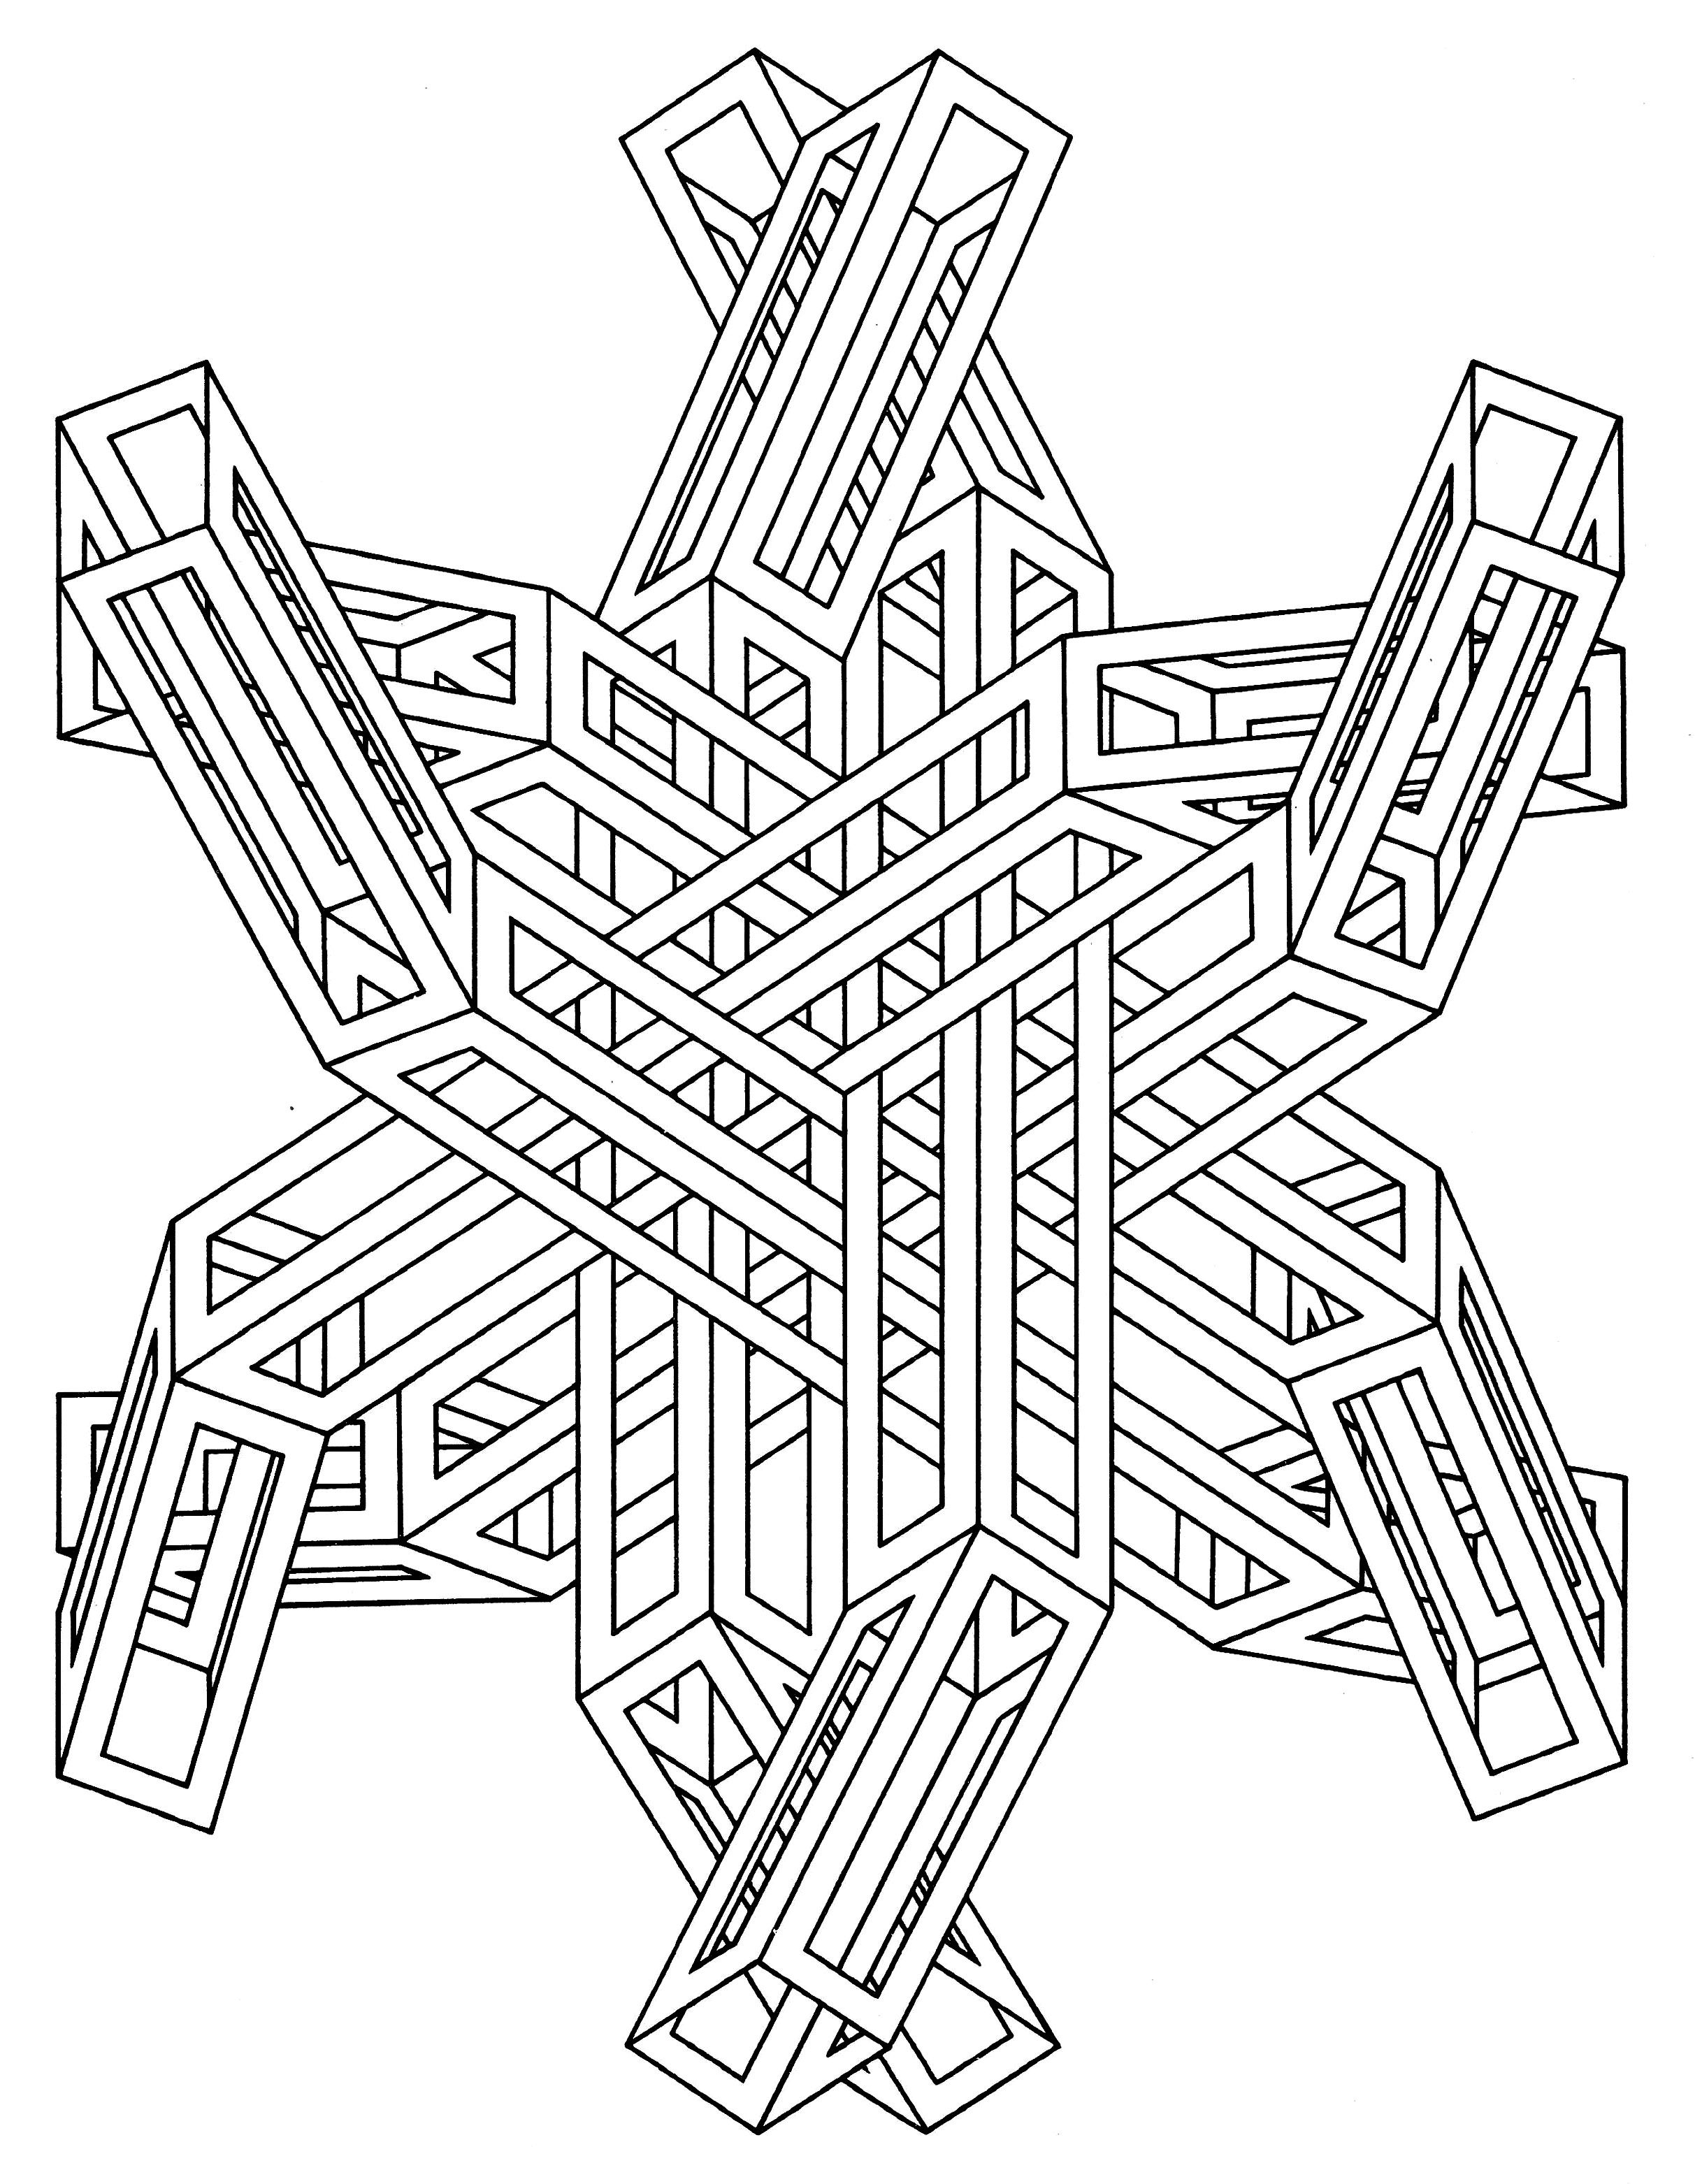 vasarely coloring pages - photo#29